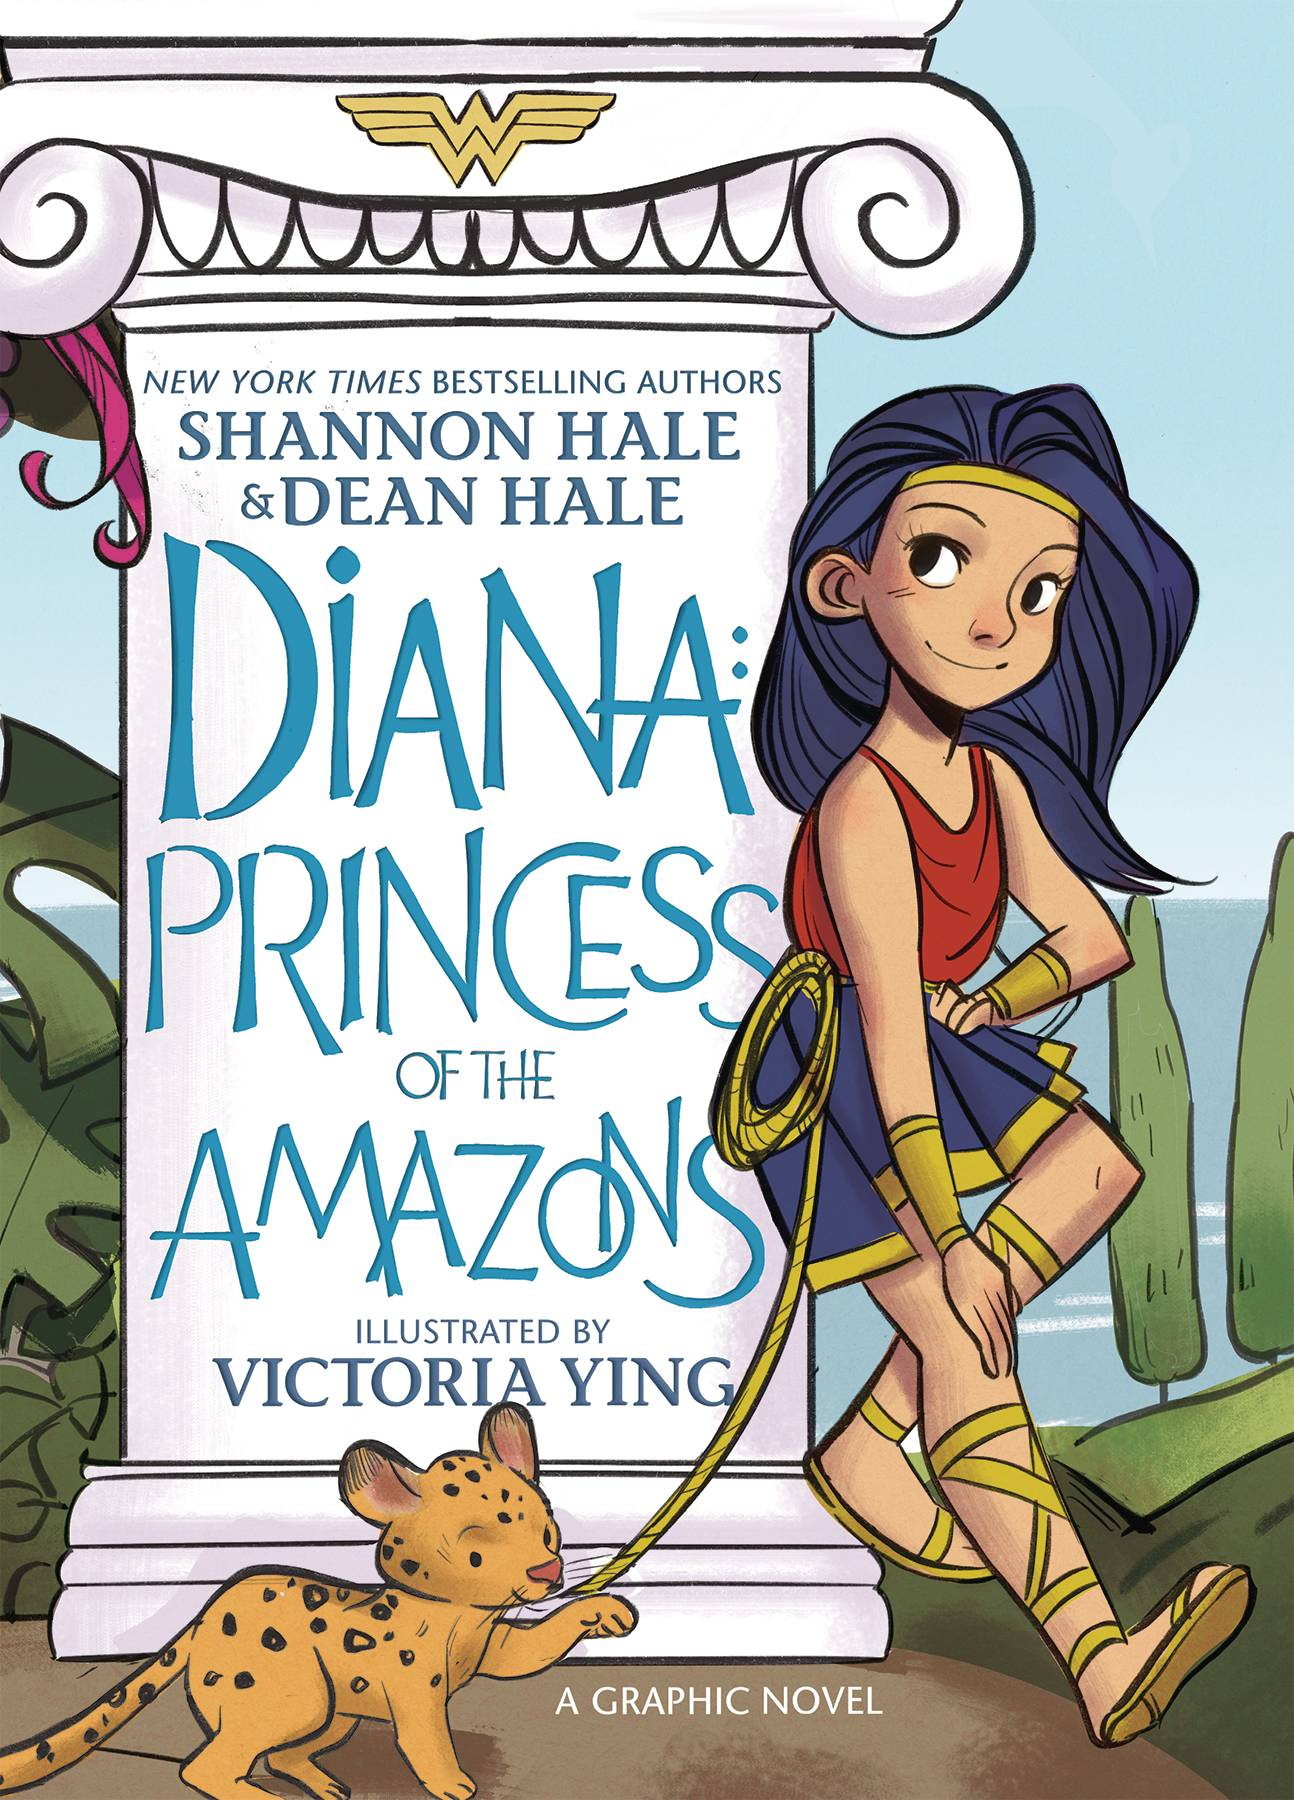 Diana: Princess of the Amazons - A Graphic Novel